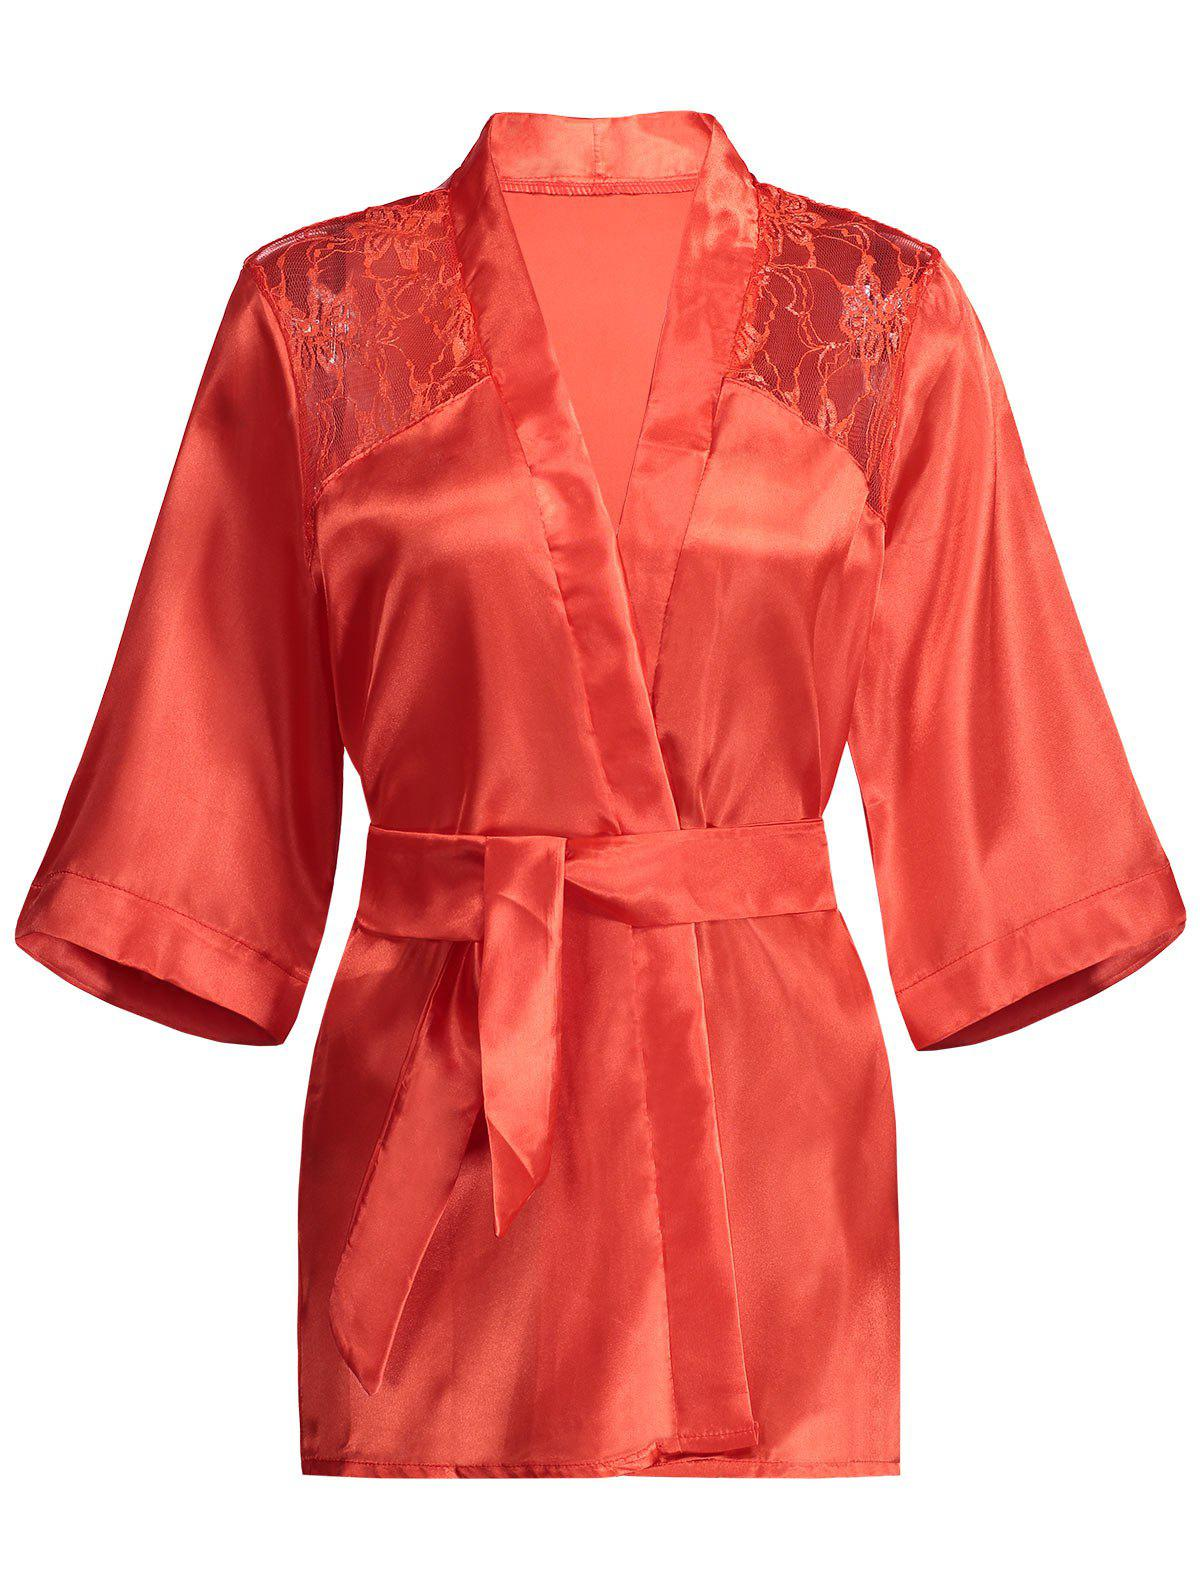 Lace Panel Sommeil Wrap Robe - Rouge S